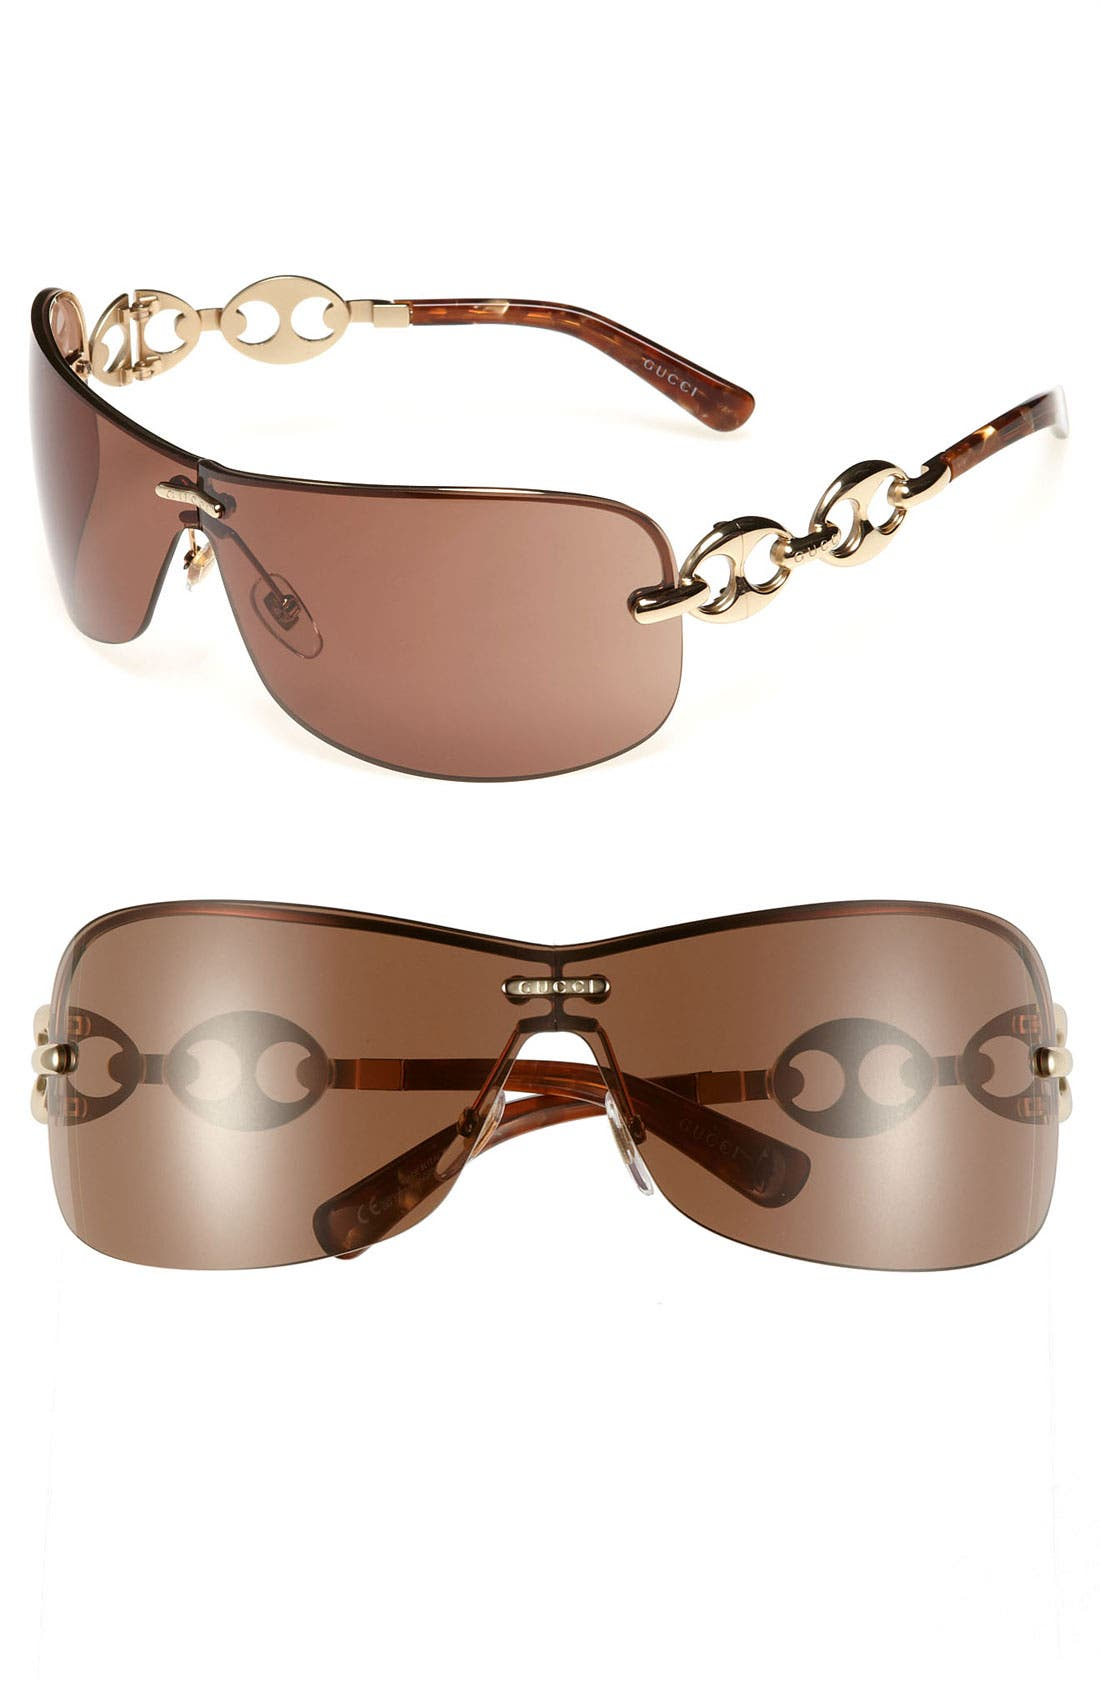 Alternate Image 1 Selected - Gucci Rimless Shield Sunglasses with Chain Detail